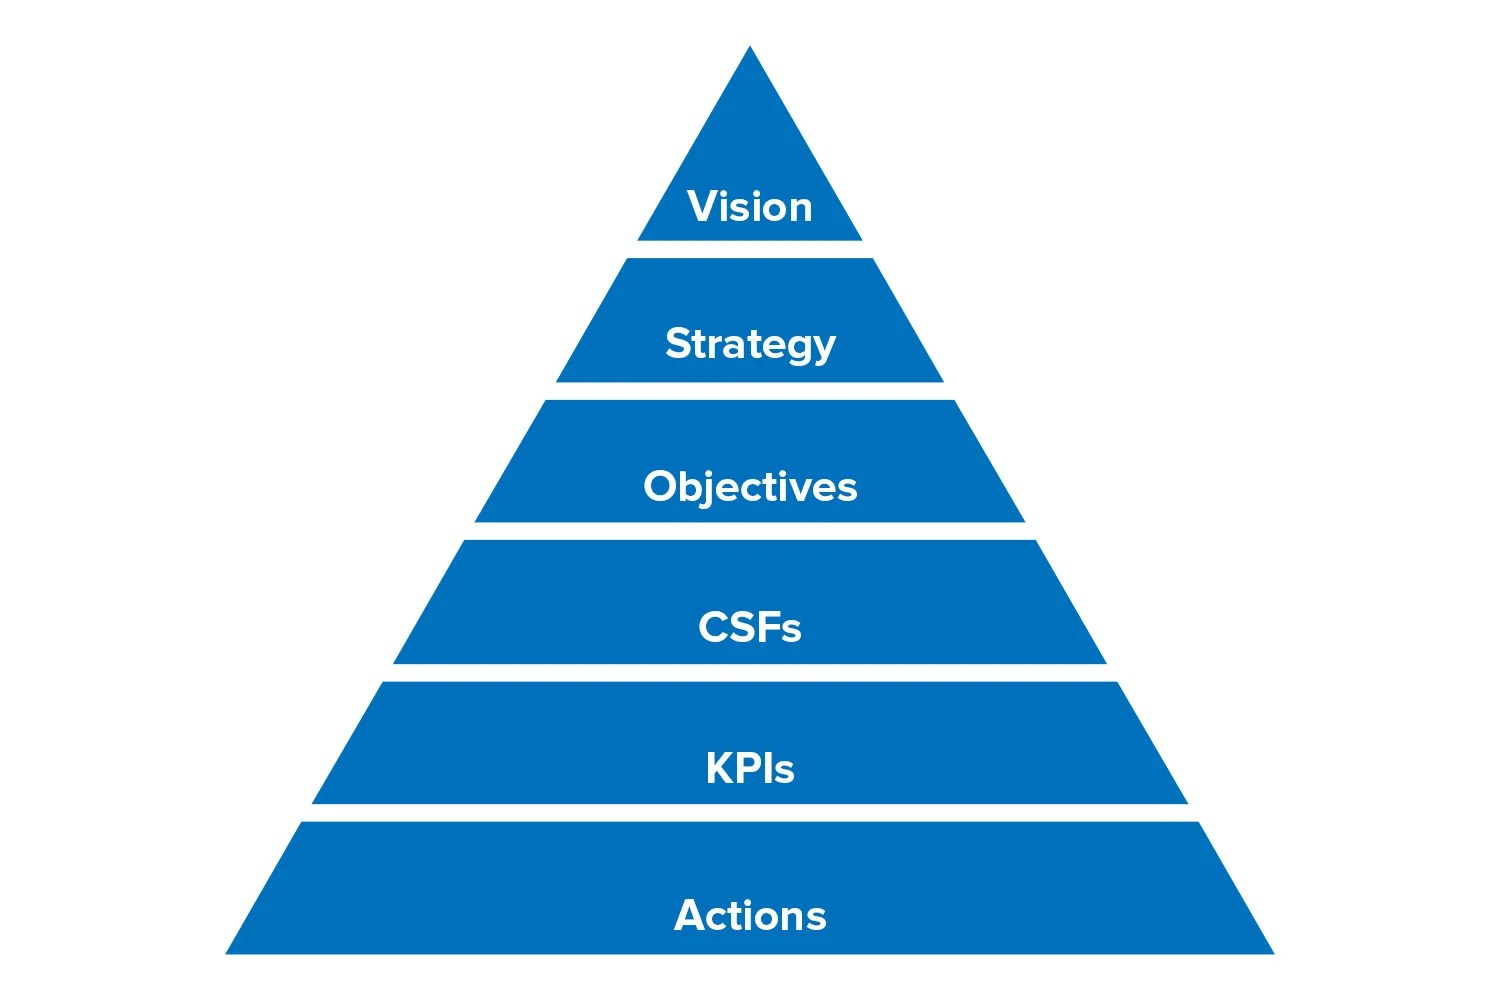 Performance Management And Kpis